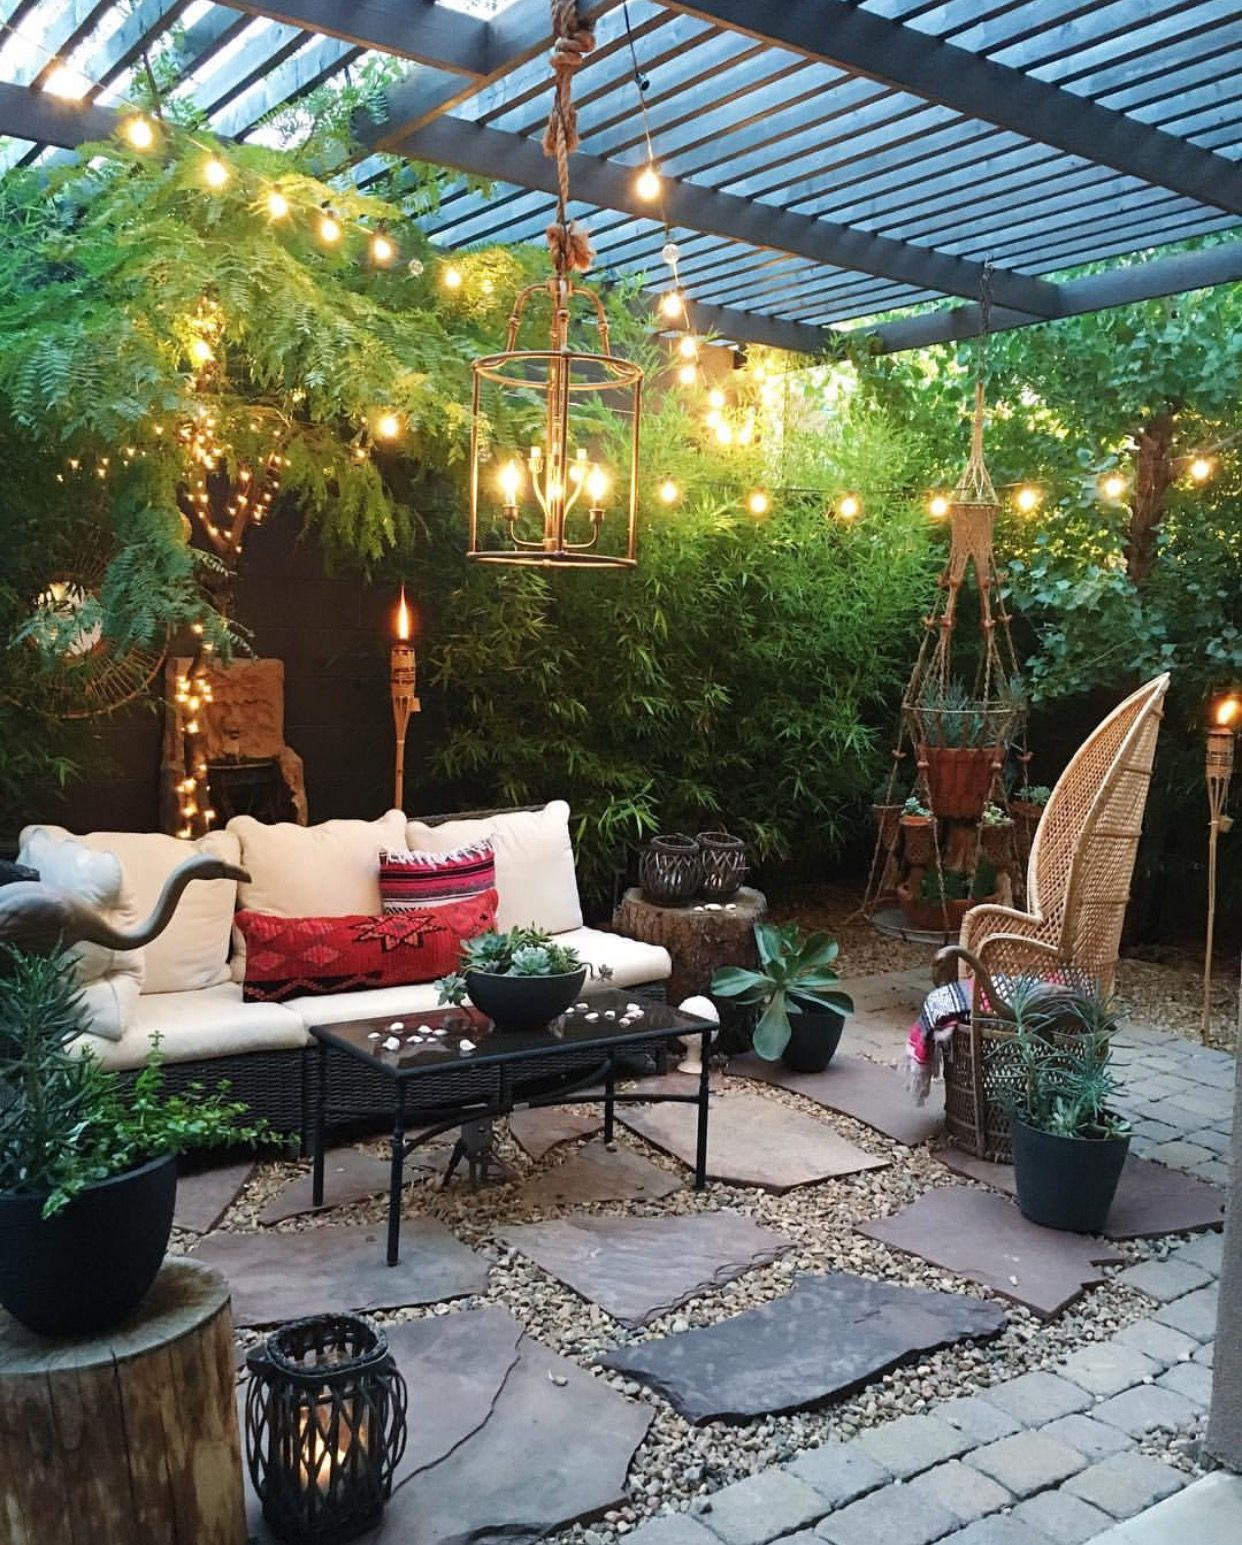 Back Yard Decoration Ideas I Love That Bohemian Plant Tower In The Back Corner I Wonder If They Bou Backyard Patio Designs Backyard Patio Outdoor Living Room